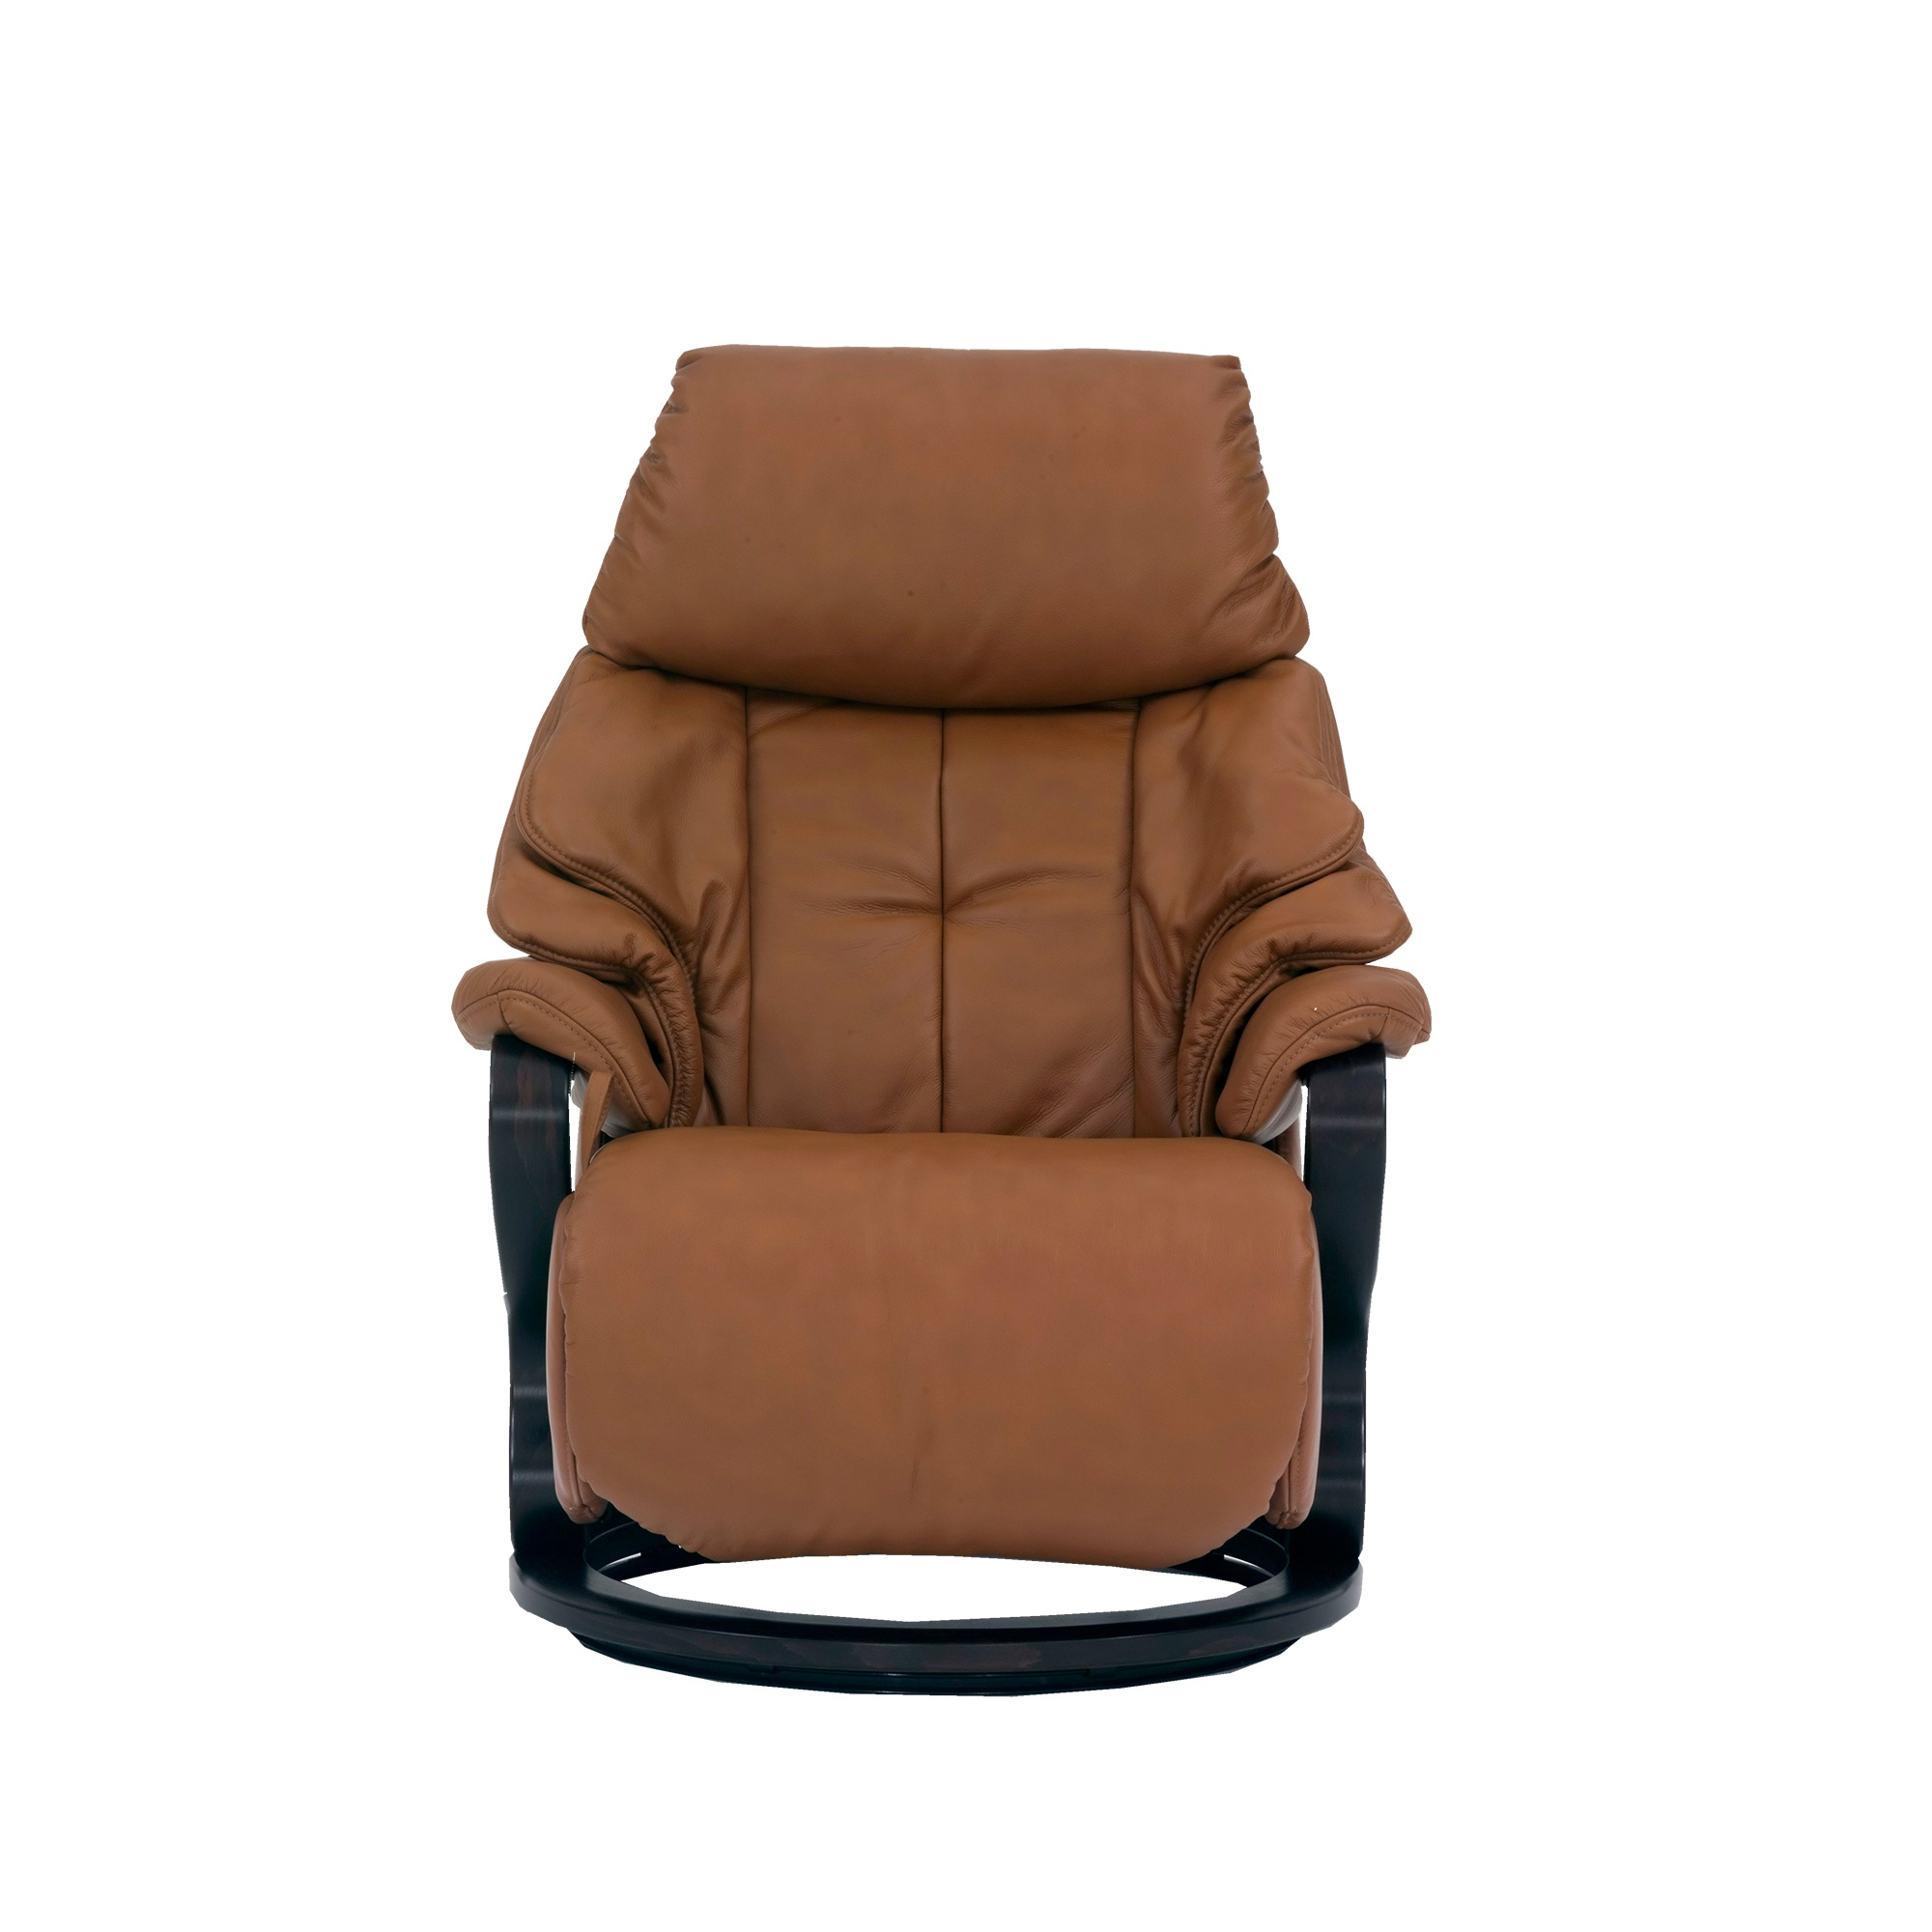 Himolla Chester Recliner Chair